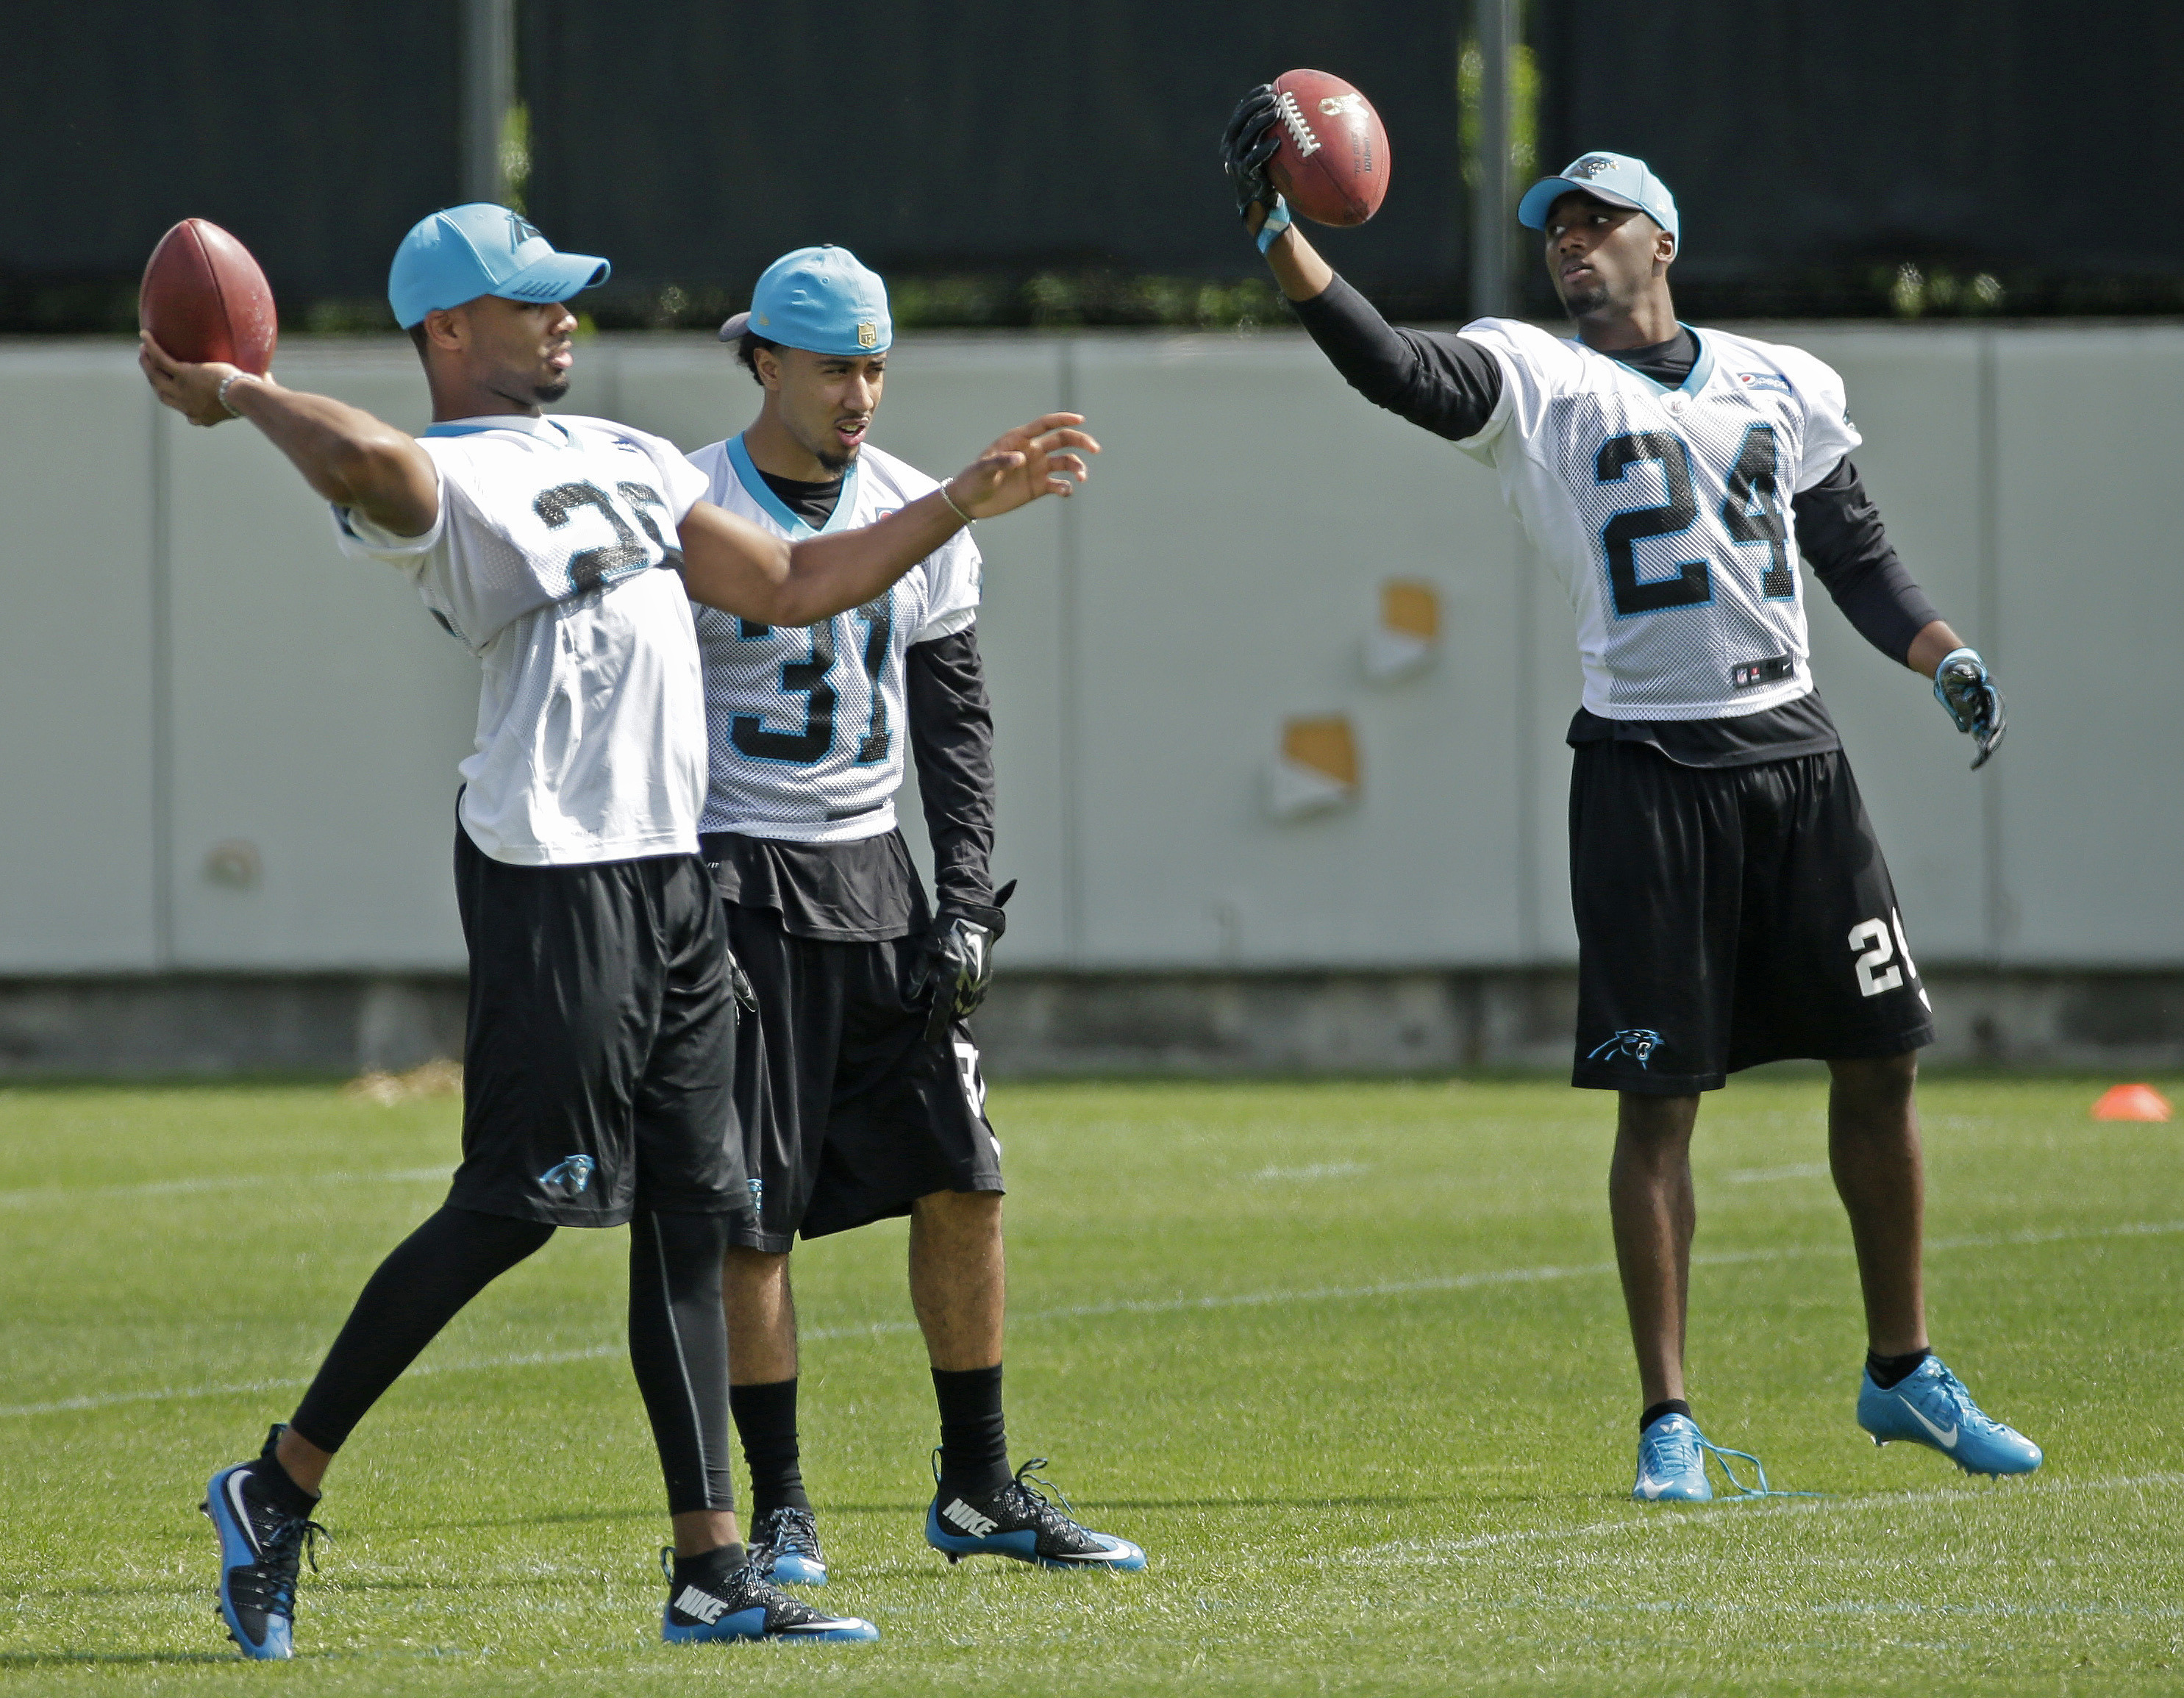 FILE - In this May 13, 2016, file photo, Carolina Panthers rookie draft picks, from left, Daryl Worley, Zack Sanchez and James Bradberry warm up during an NFL football practice in Charlotte, N.C. Panthers rookie cornerbacks James Bradberry and Daryl Worle